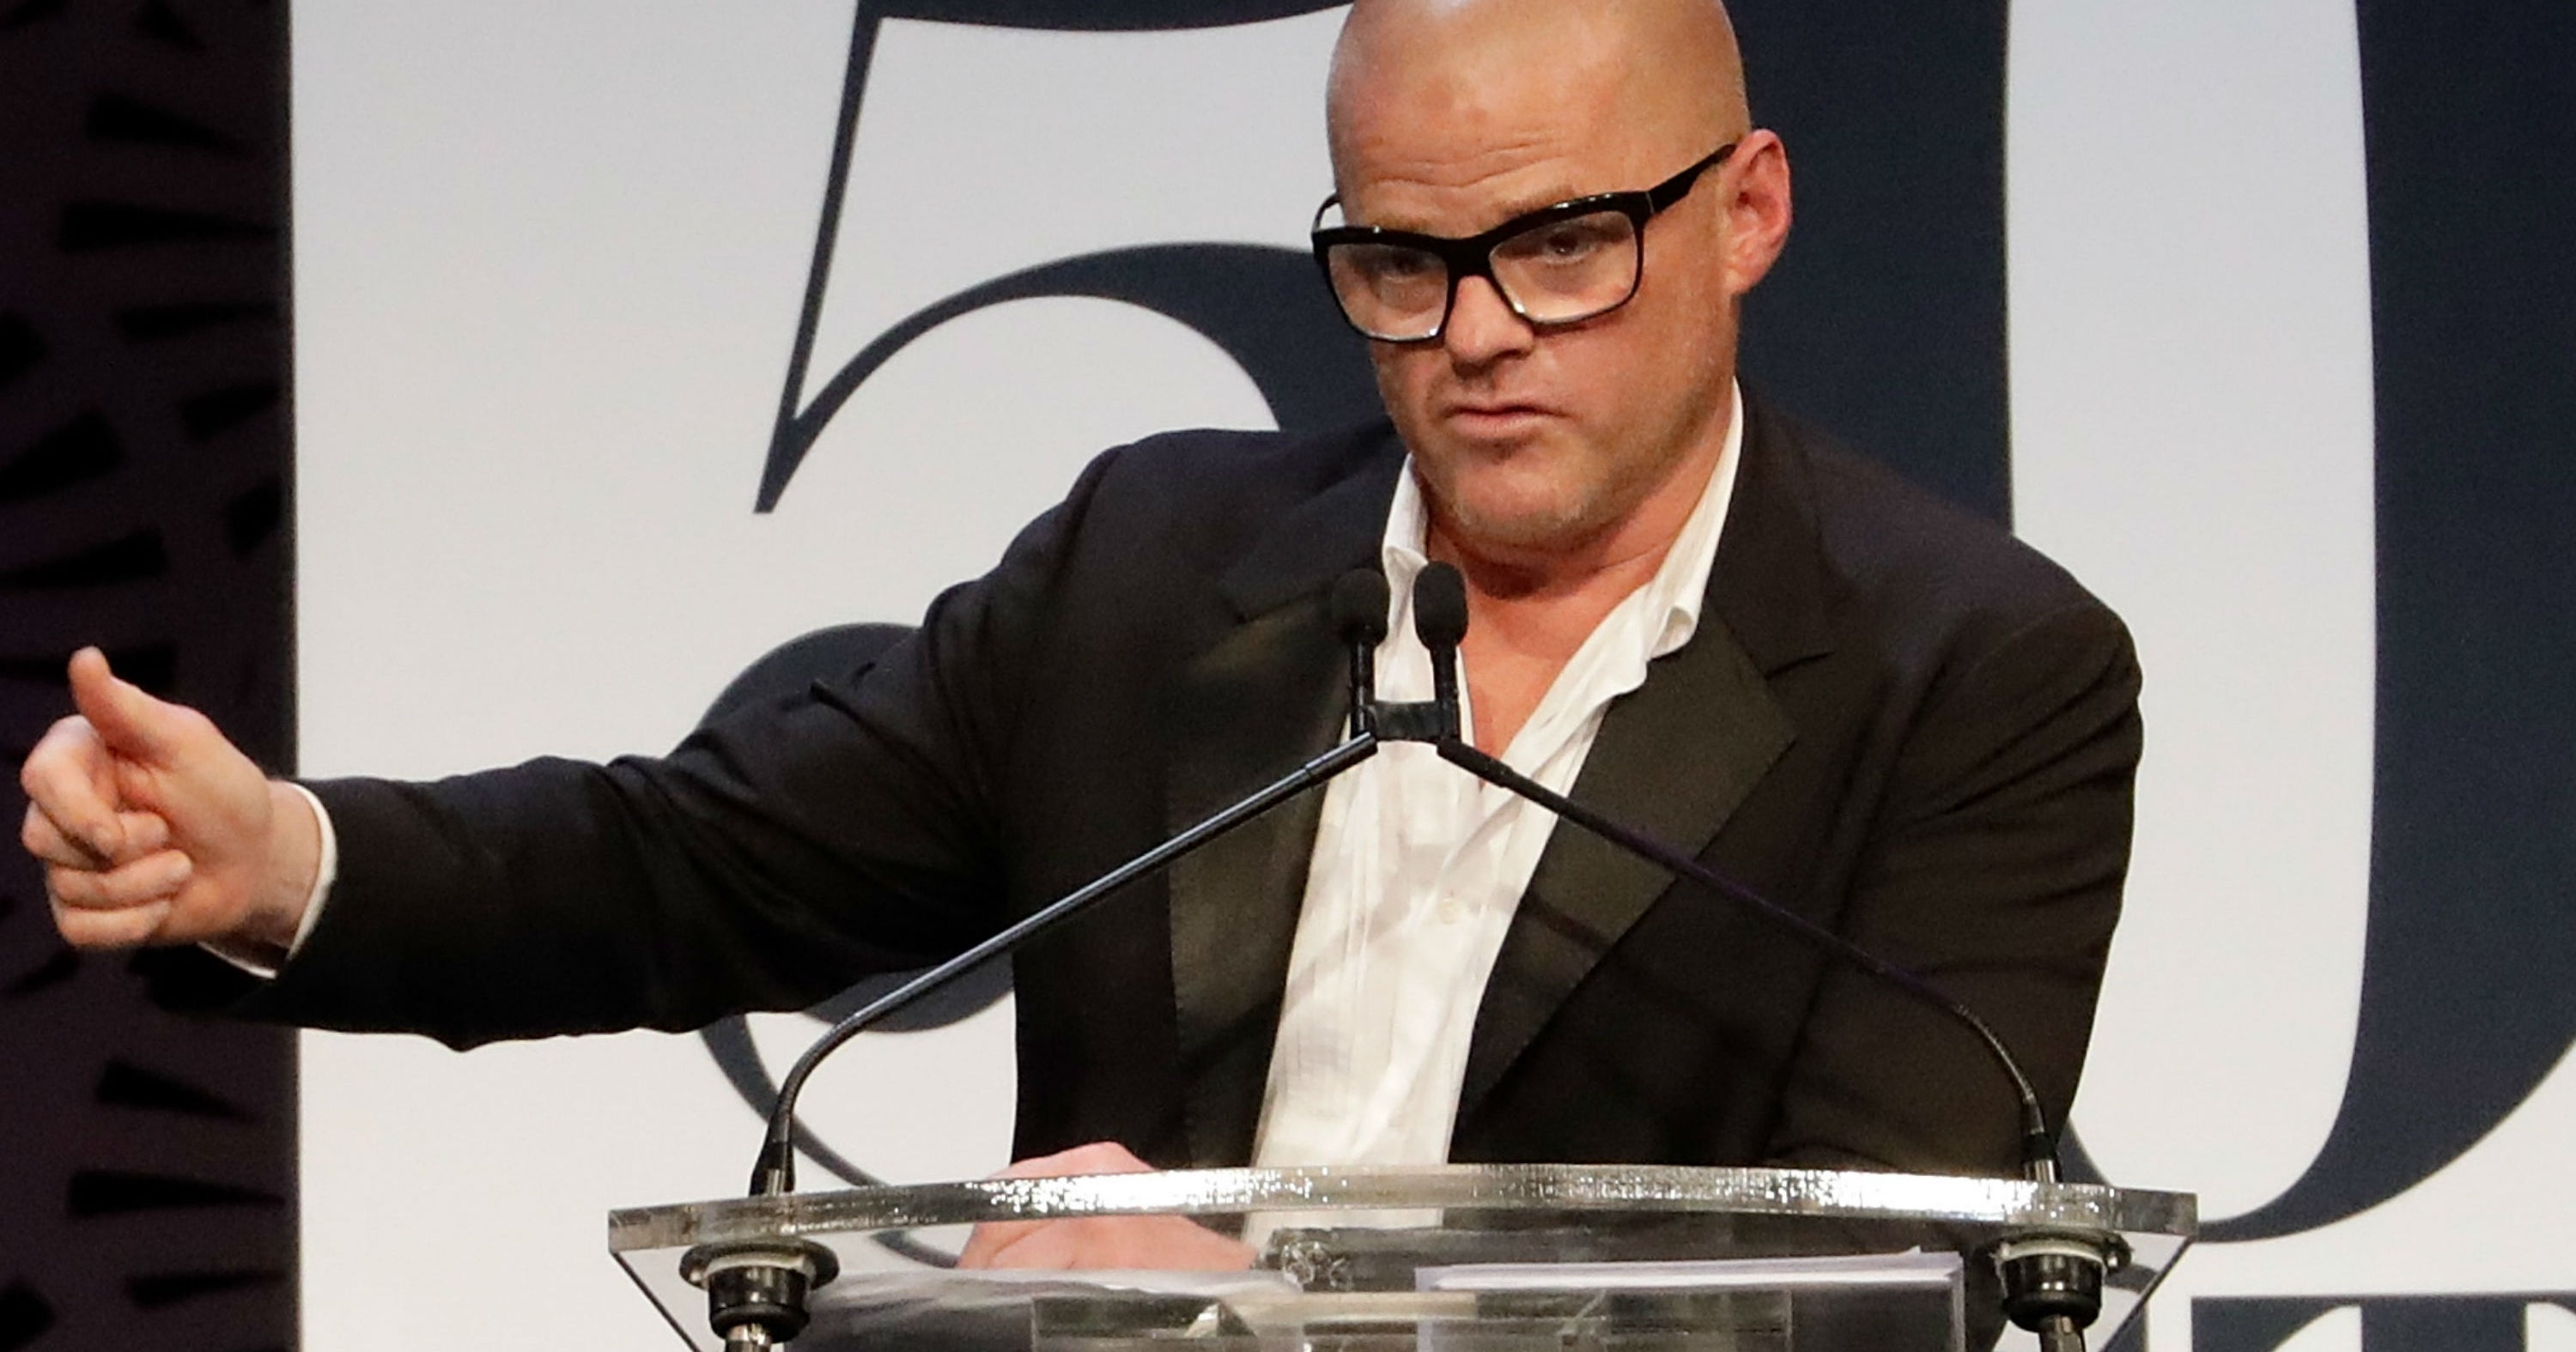 The Internet Is Roasting Heston Blumenthal For His Comments About Female Chefs